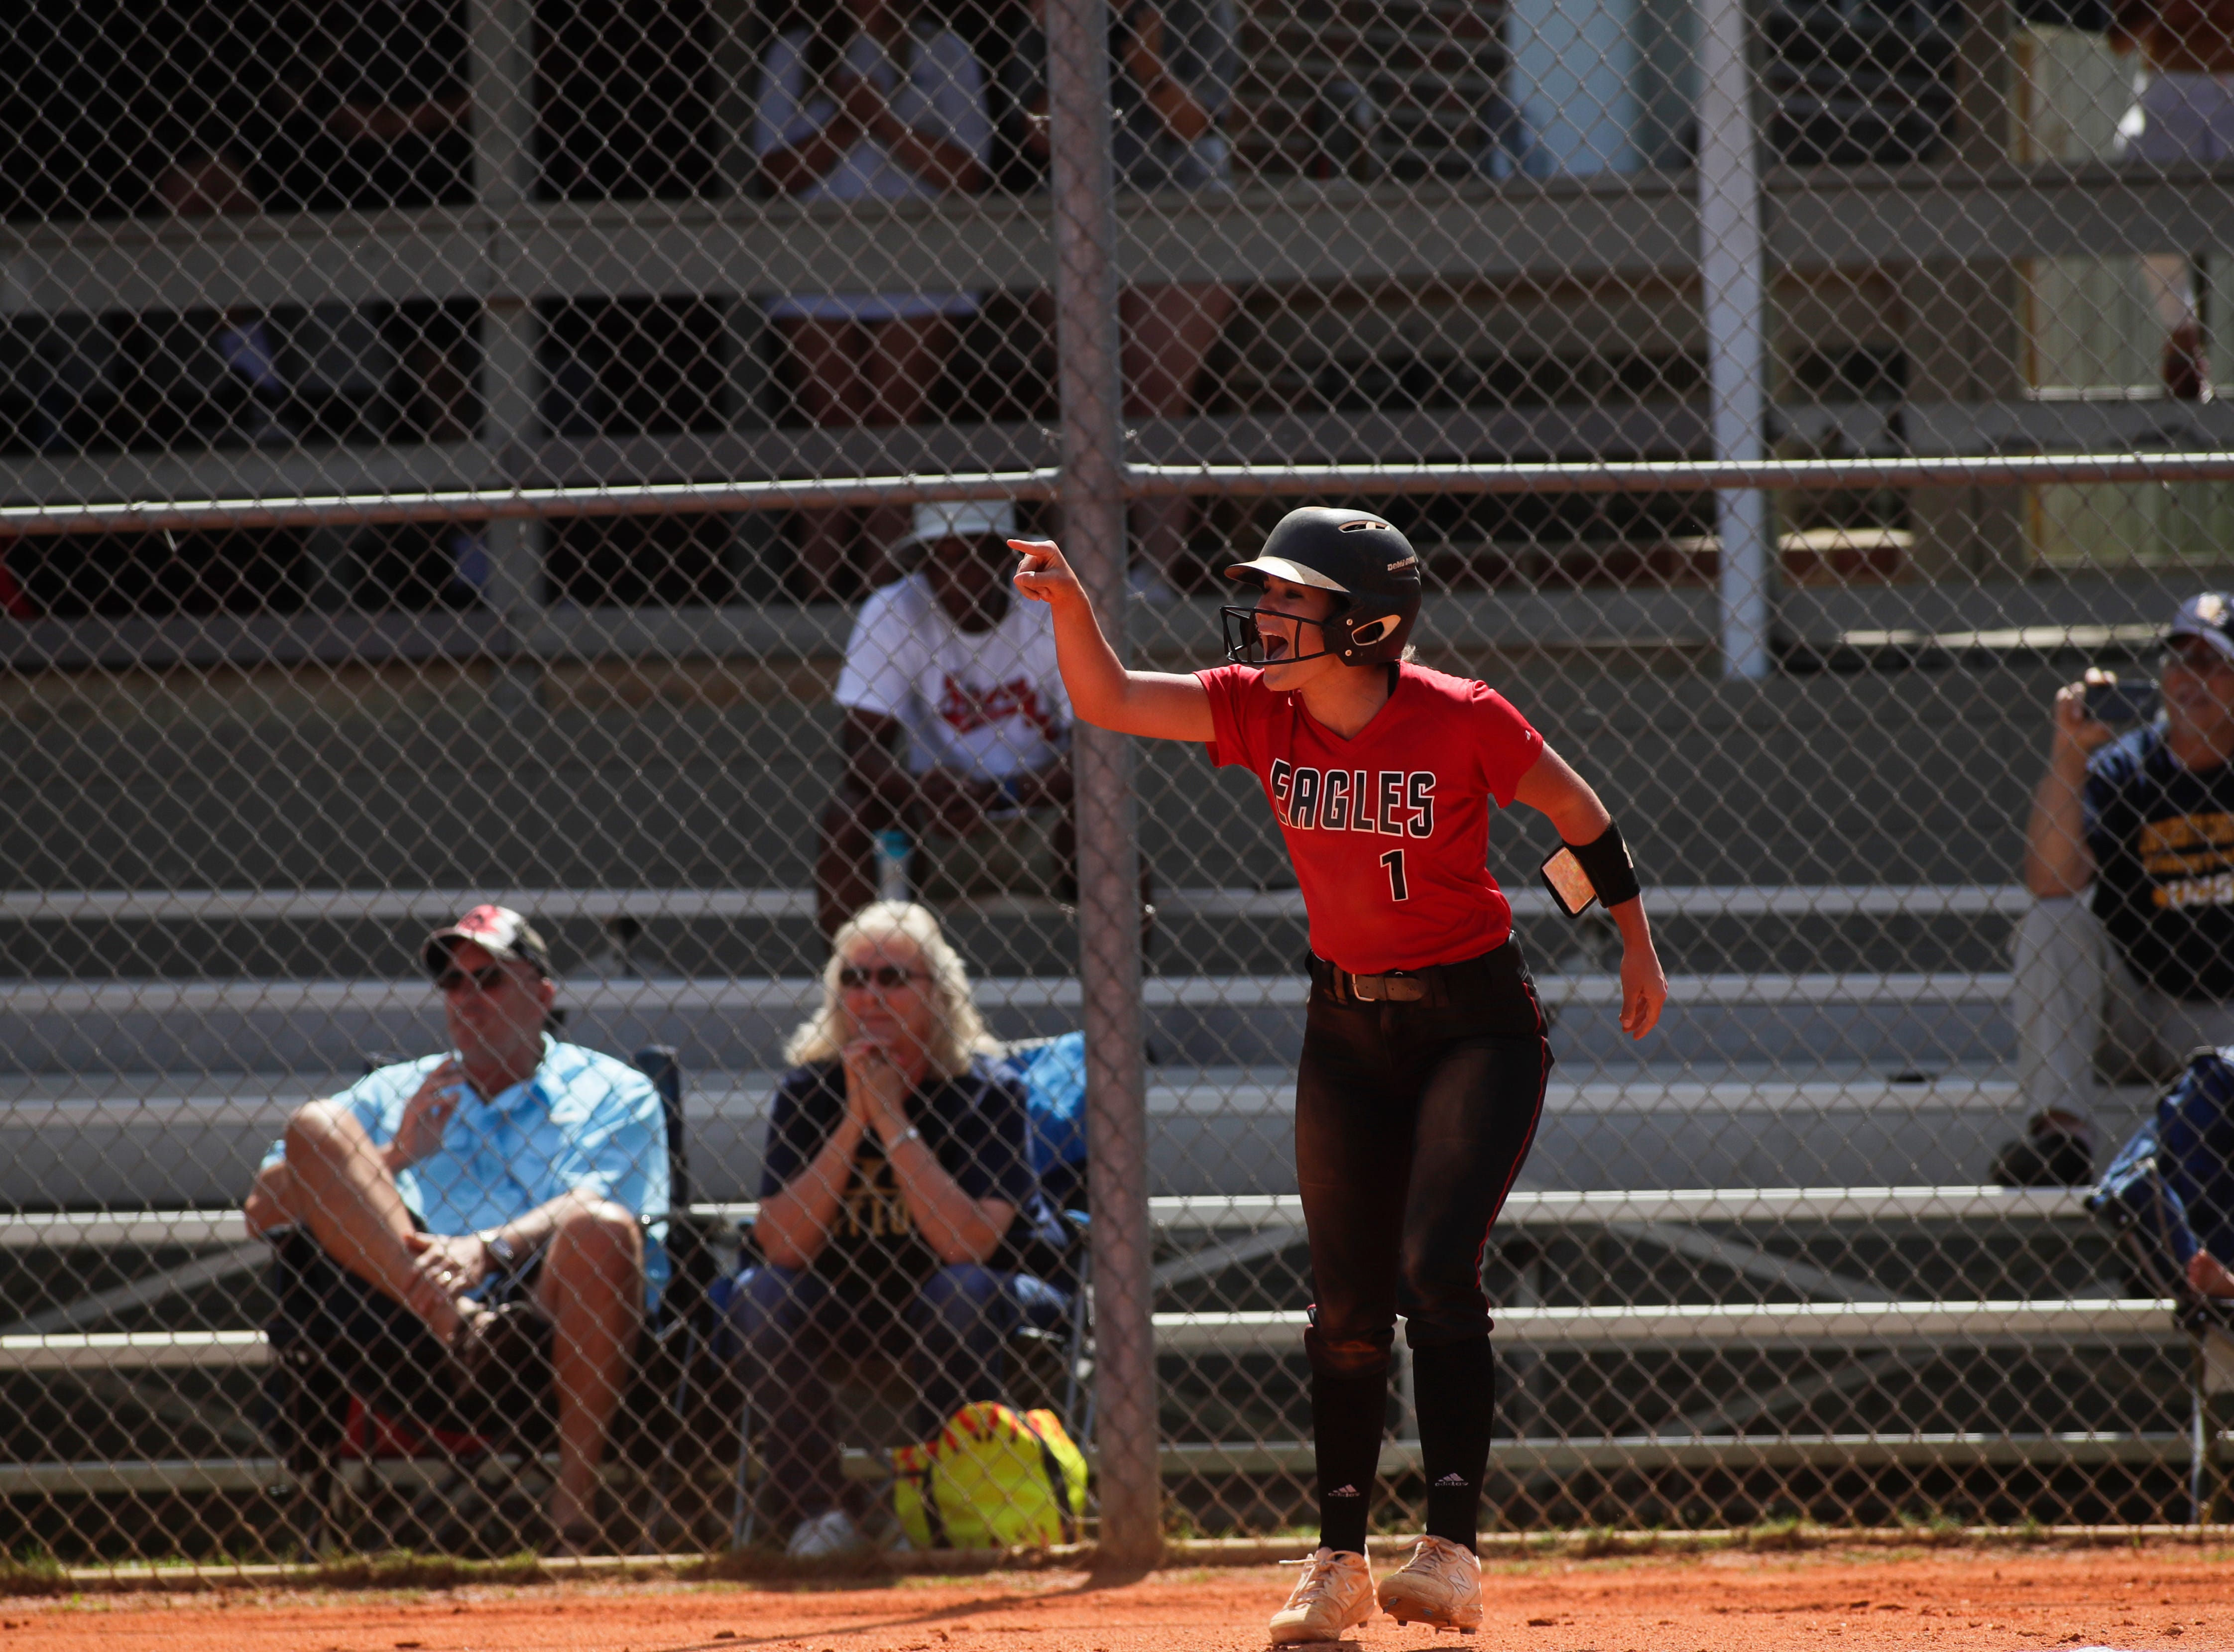 North Florida Christian's Chloe Culp (1) cheers on her teammates as she scores a run during the 1-3A regional final game between NFC and University Christian at NFC Tuesday, May 14, 2019. UC defeated NFC 16 to 11 to advance to the state tournament.